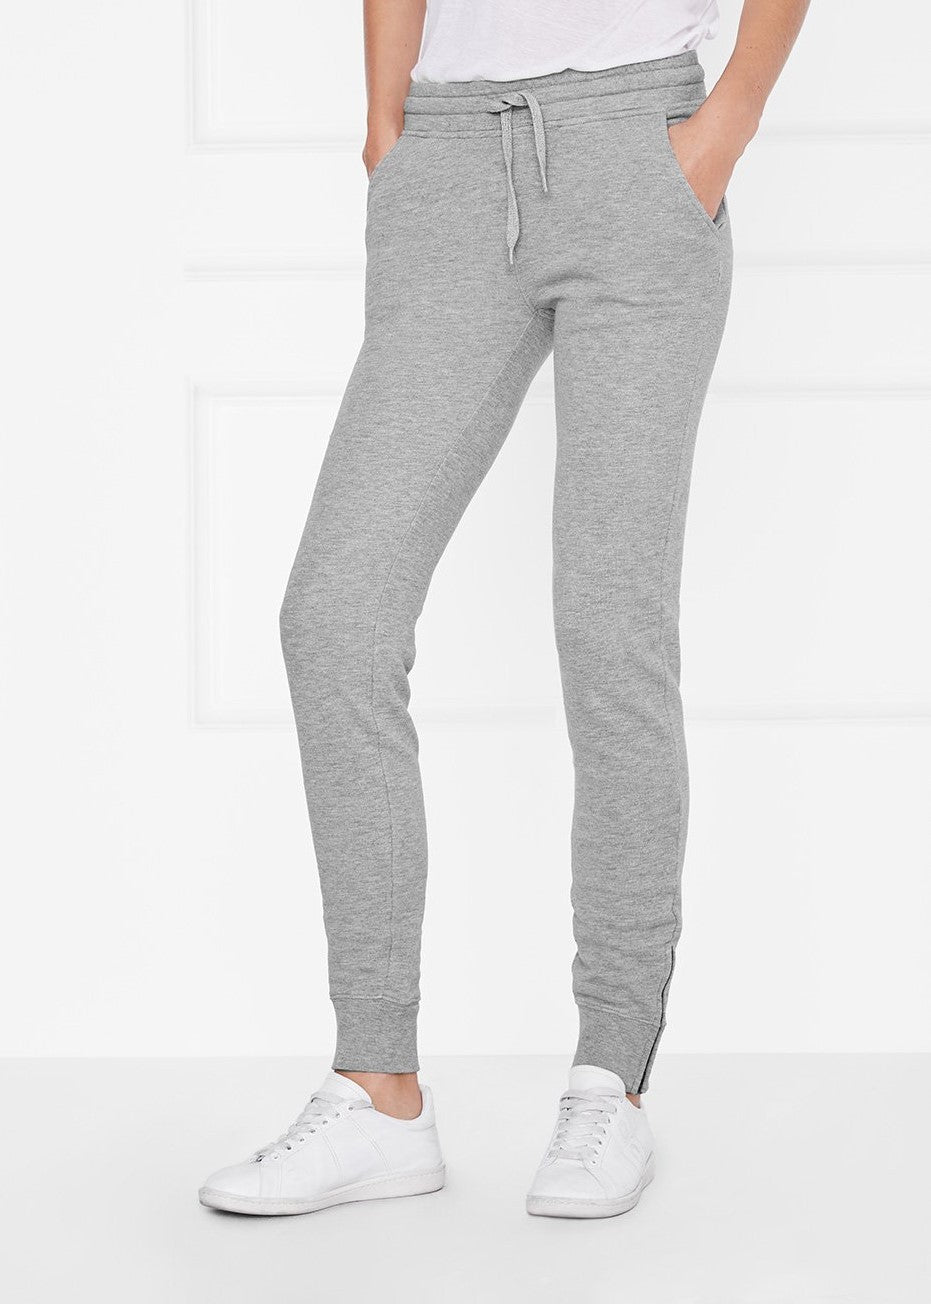 Anine Bing Relaxed sweats heather grey